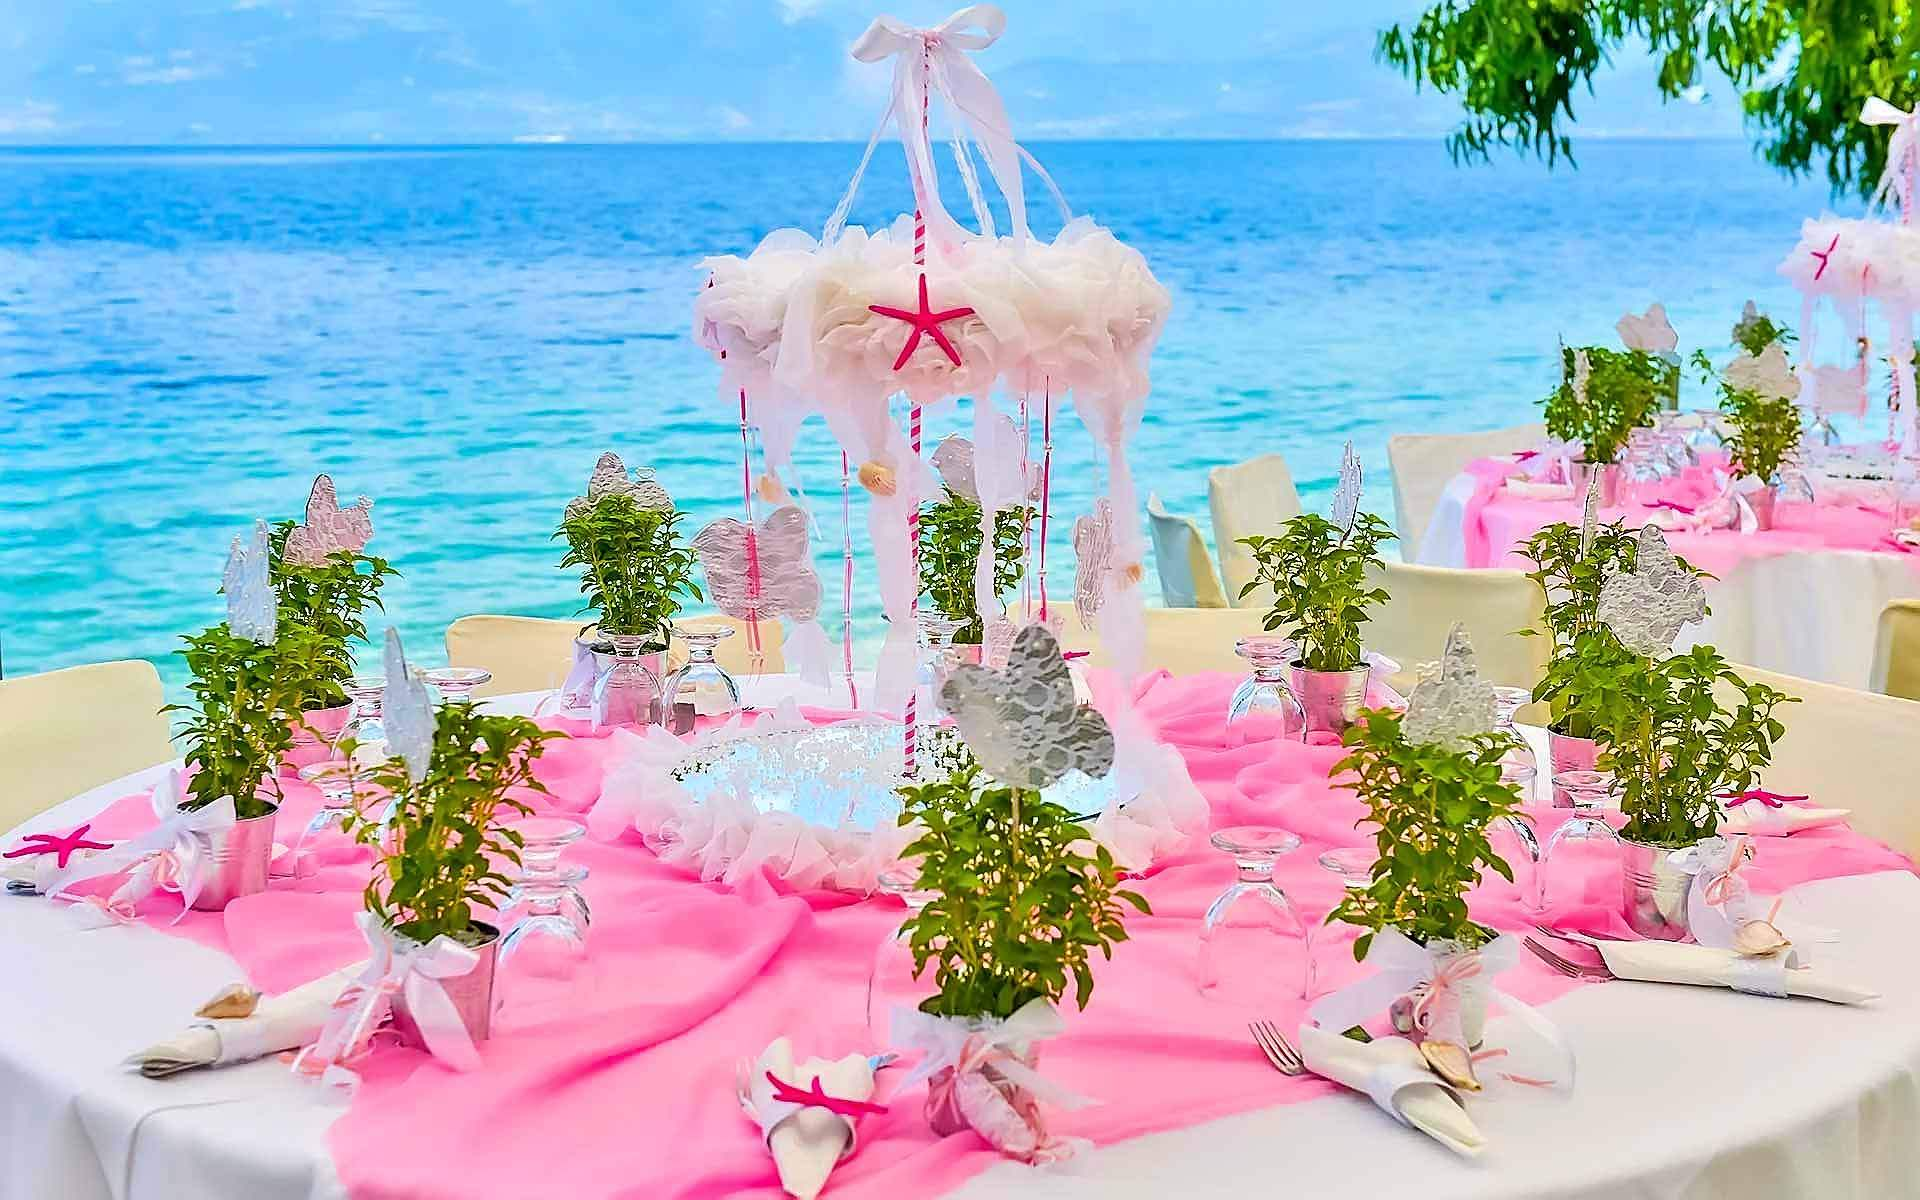 Christening-Table-With-Central-Decoration-Carousel-In-Shades-Of-Pink-And-Pots-Of-Basil-Complement